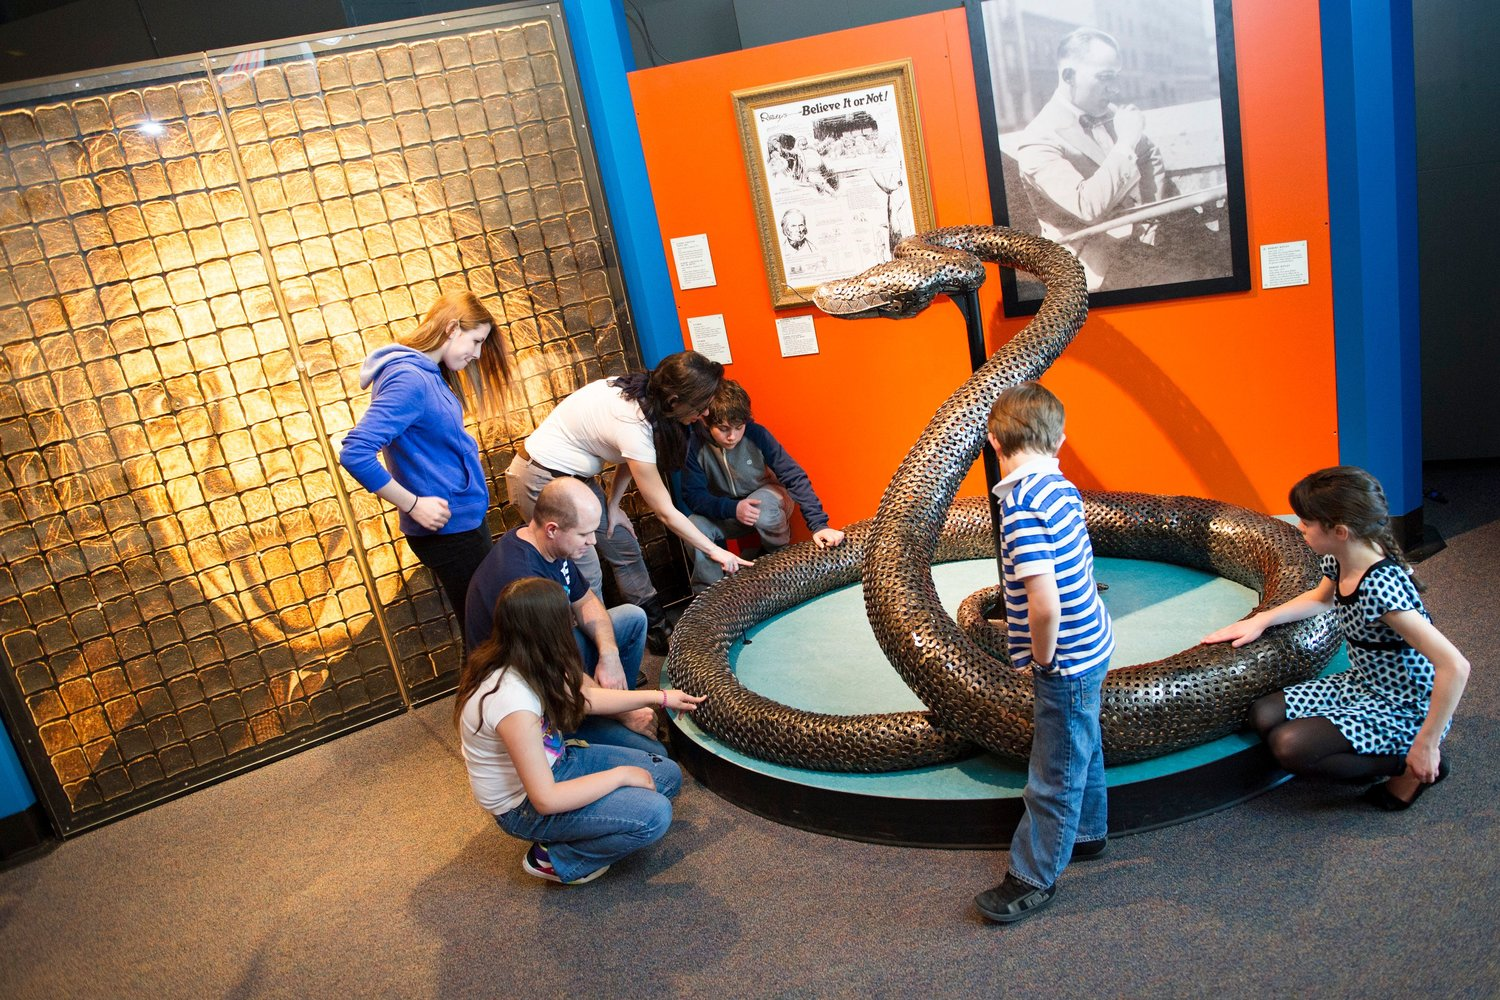 Children can crawl through a life-size model of the prehistoric snake, Titanoboa, and revel at its size.